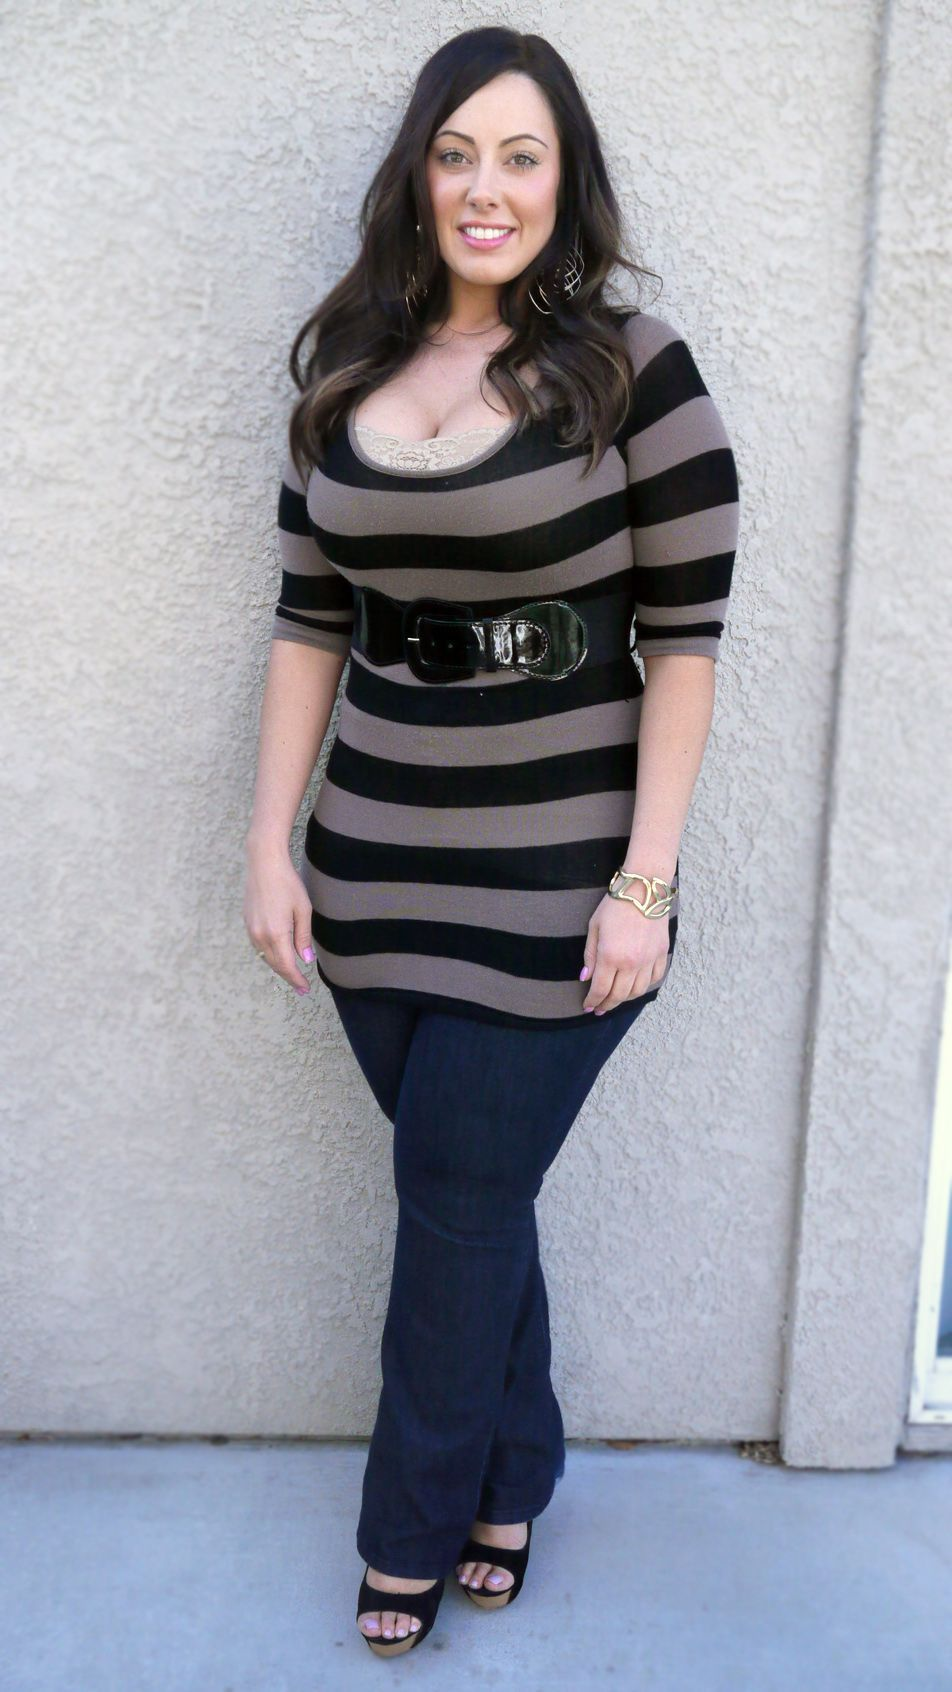 1000+ images about Simply Marlena ♥ on Pinterest | Curvy girl ...